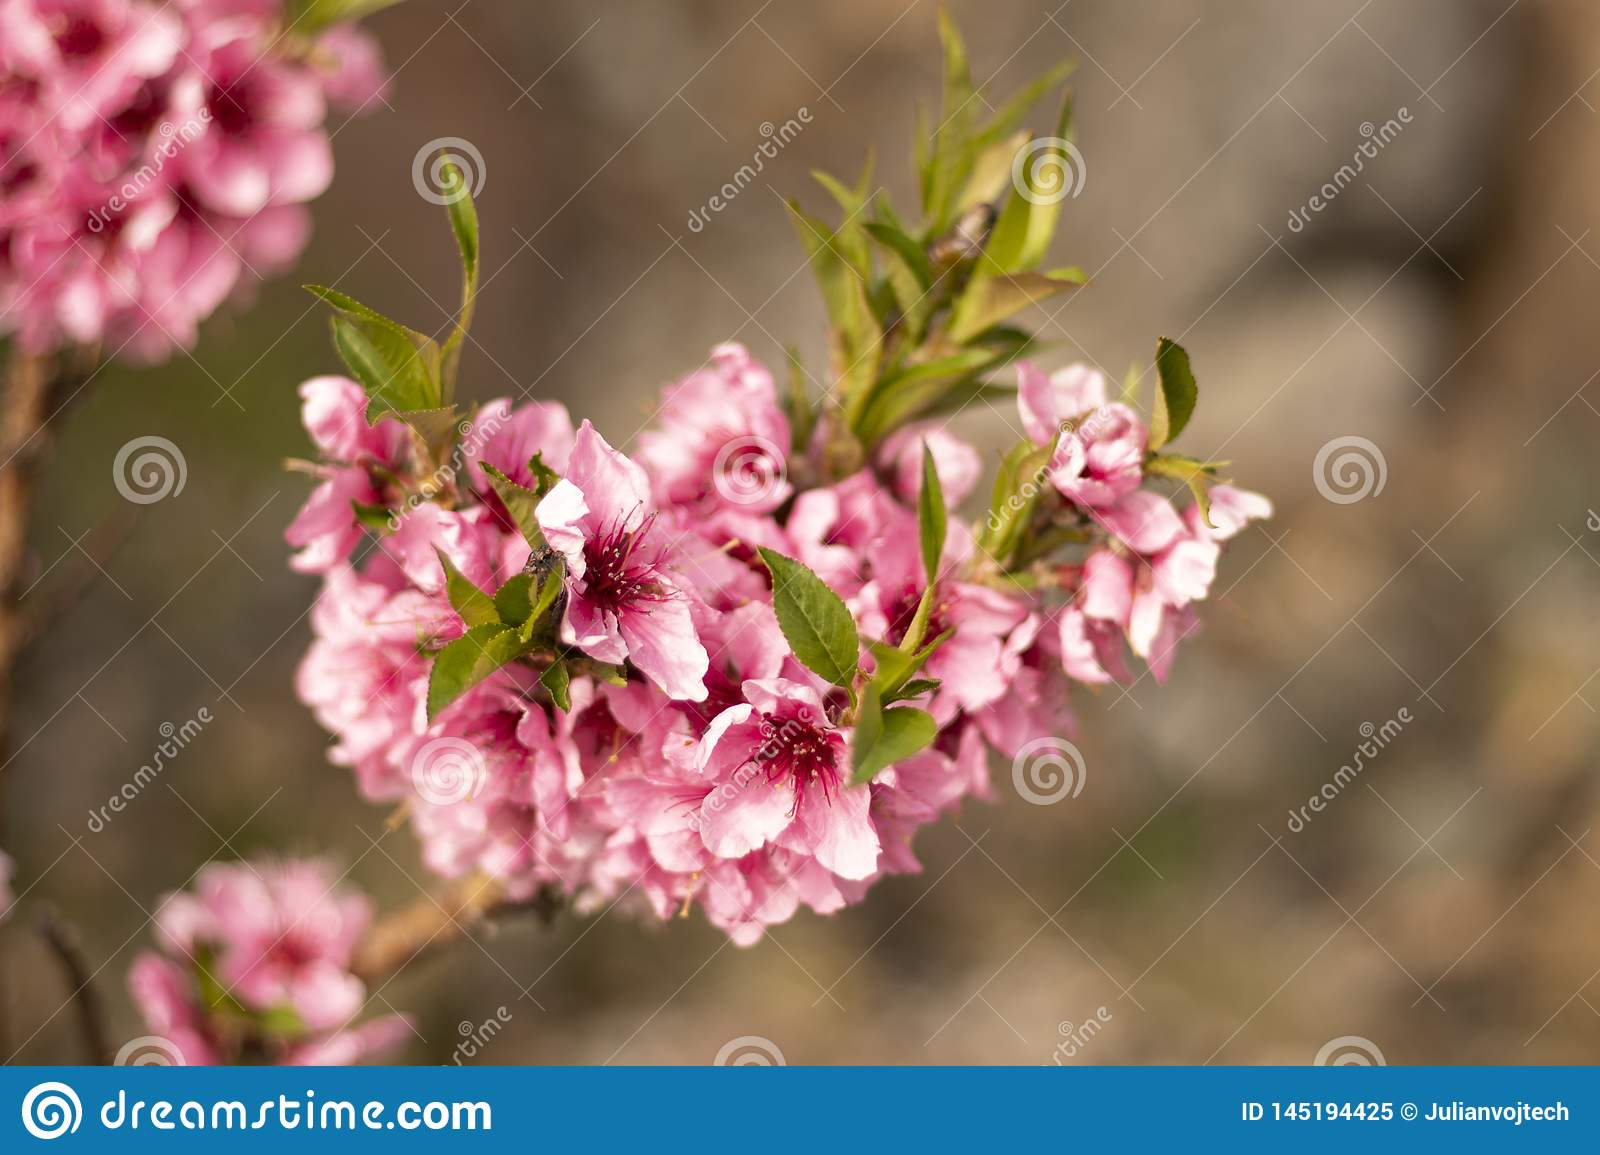 Beautiful Cherry blossom flower in blooming